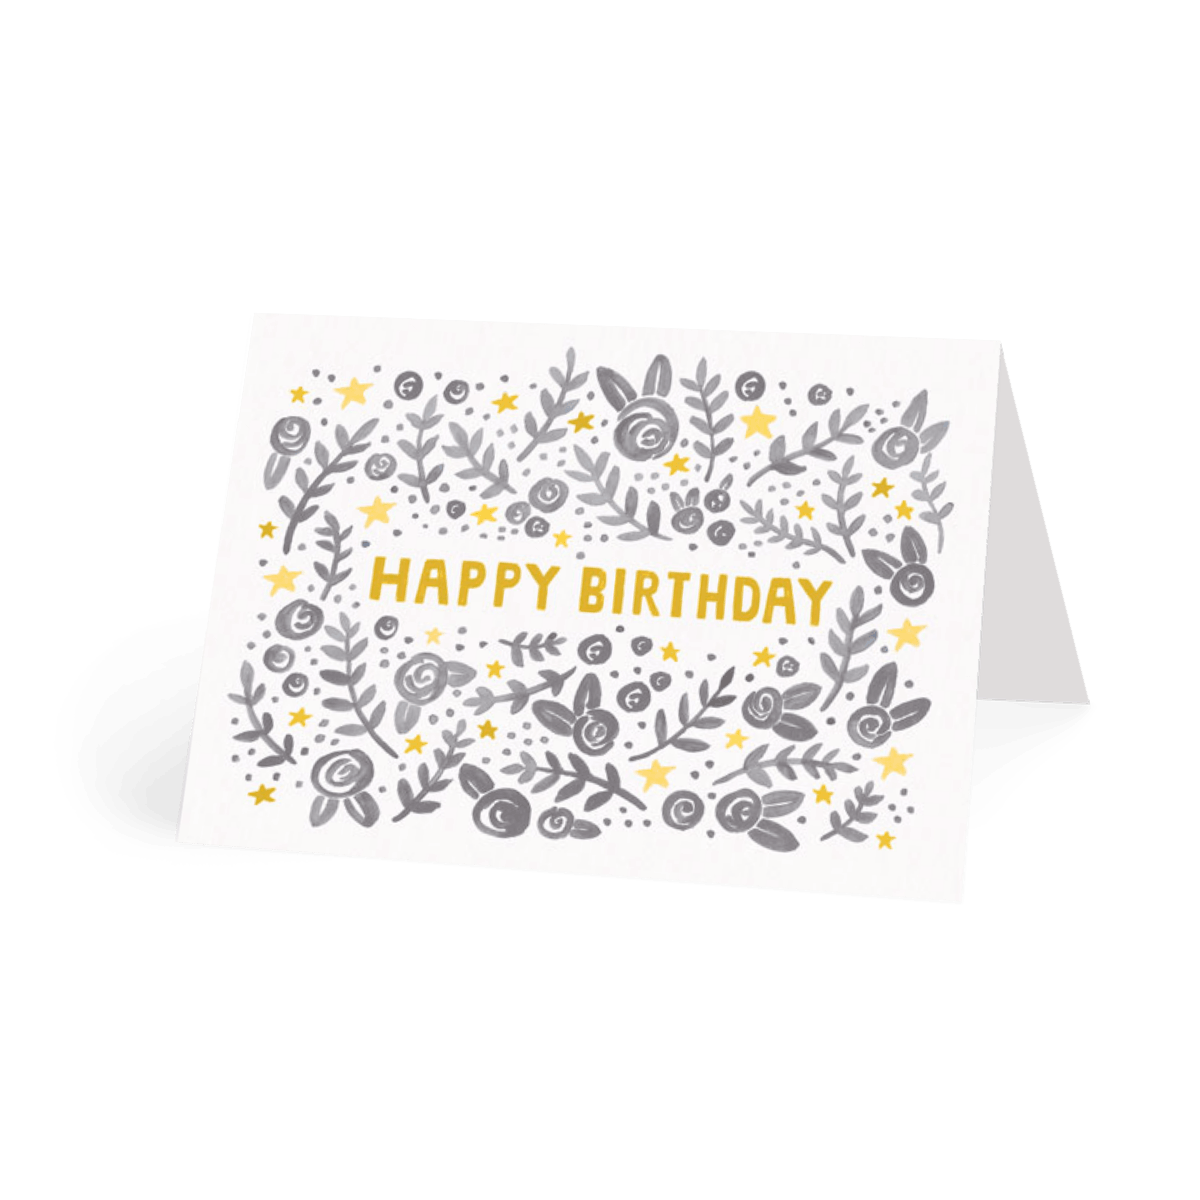 Https%3a%2f%2fwww.papier.com%2fproduct image%2f7769%2f14%2fbirthday florals stars 1916 front 1464871243.png?ixlib=rb 1.1